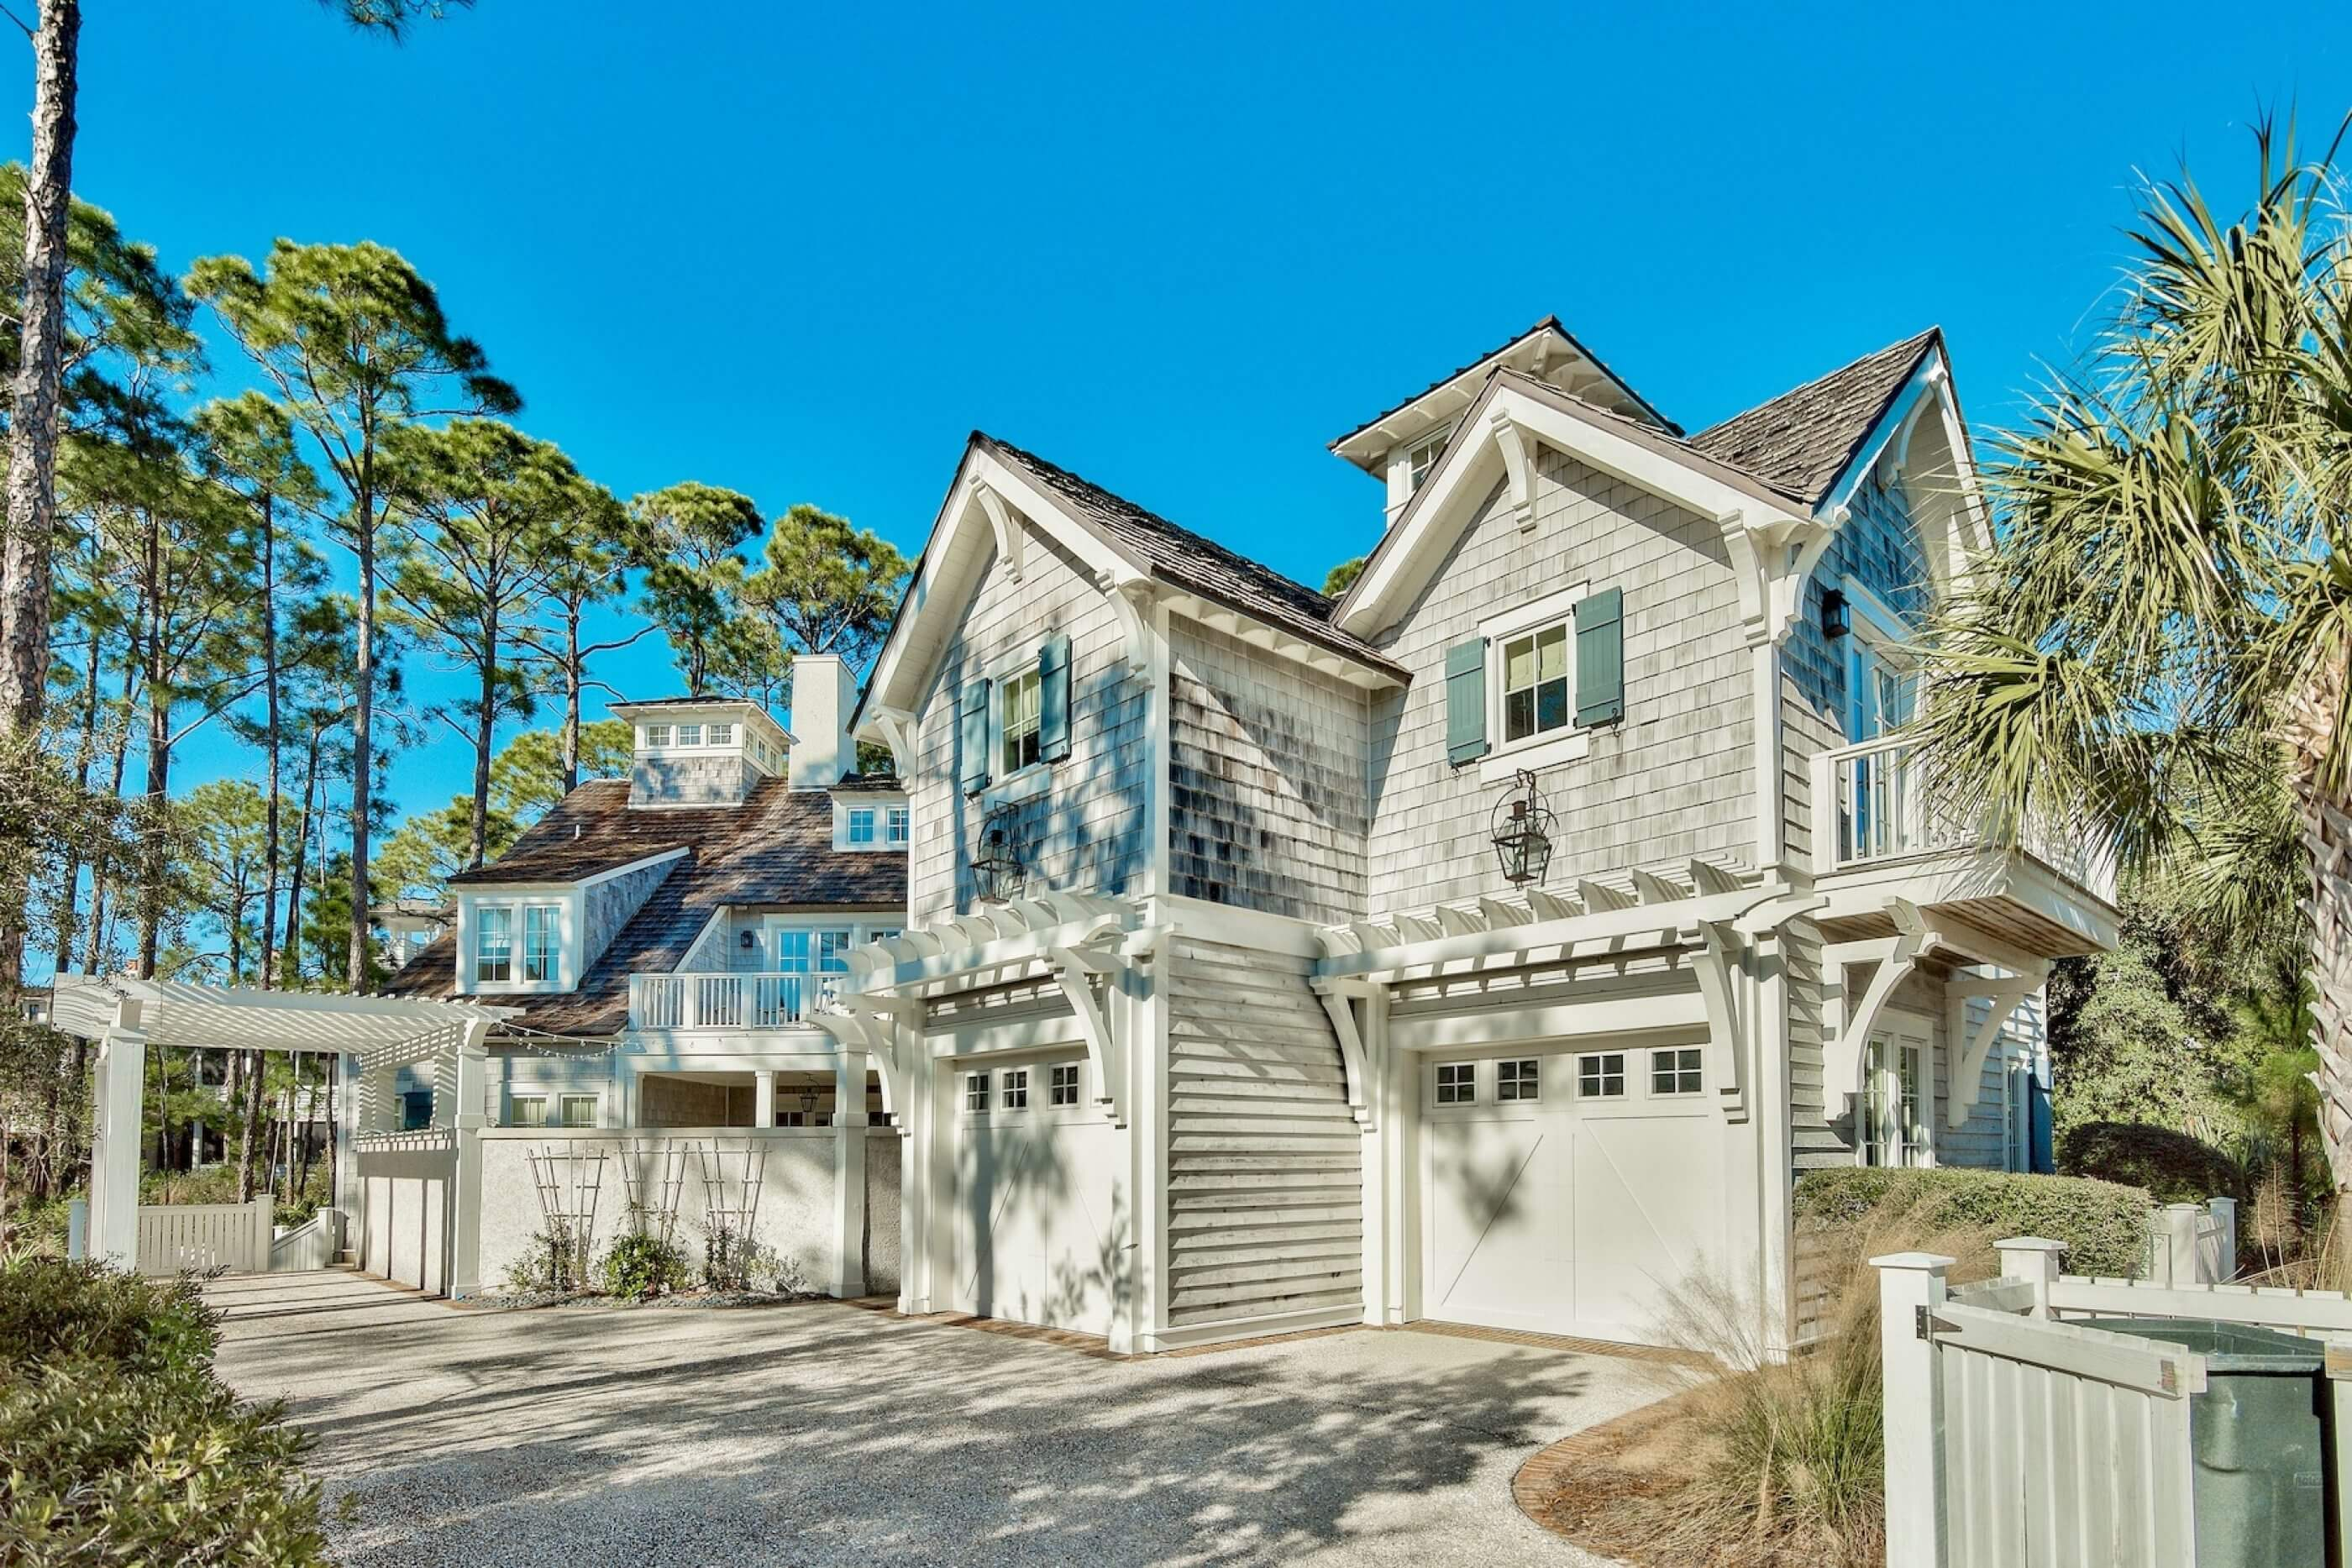 Watersound Beach, FL – $3.4 Million Fractional / 4 Weeks of Usage